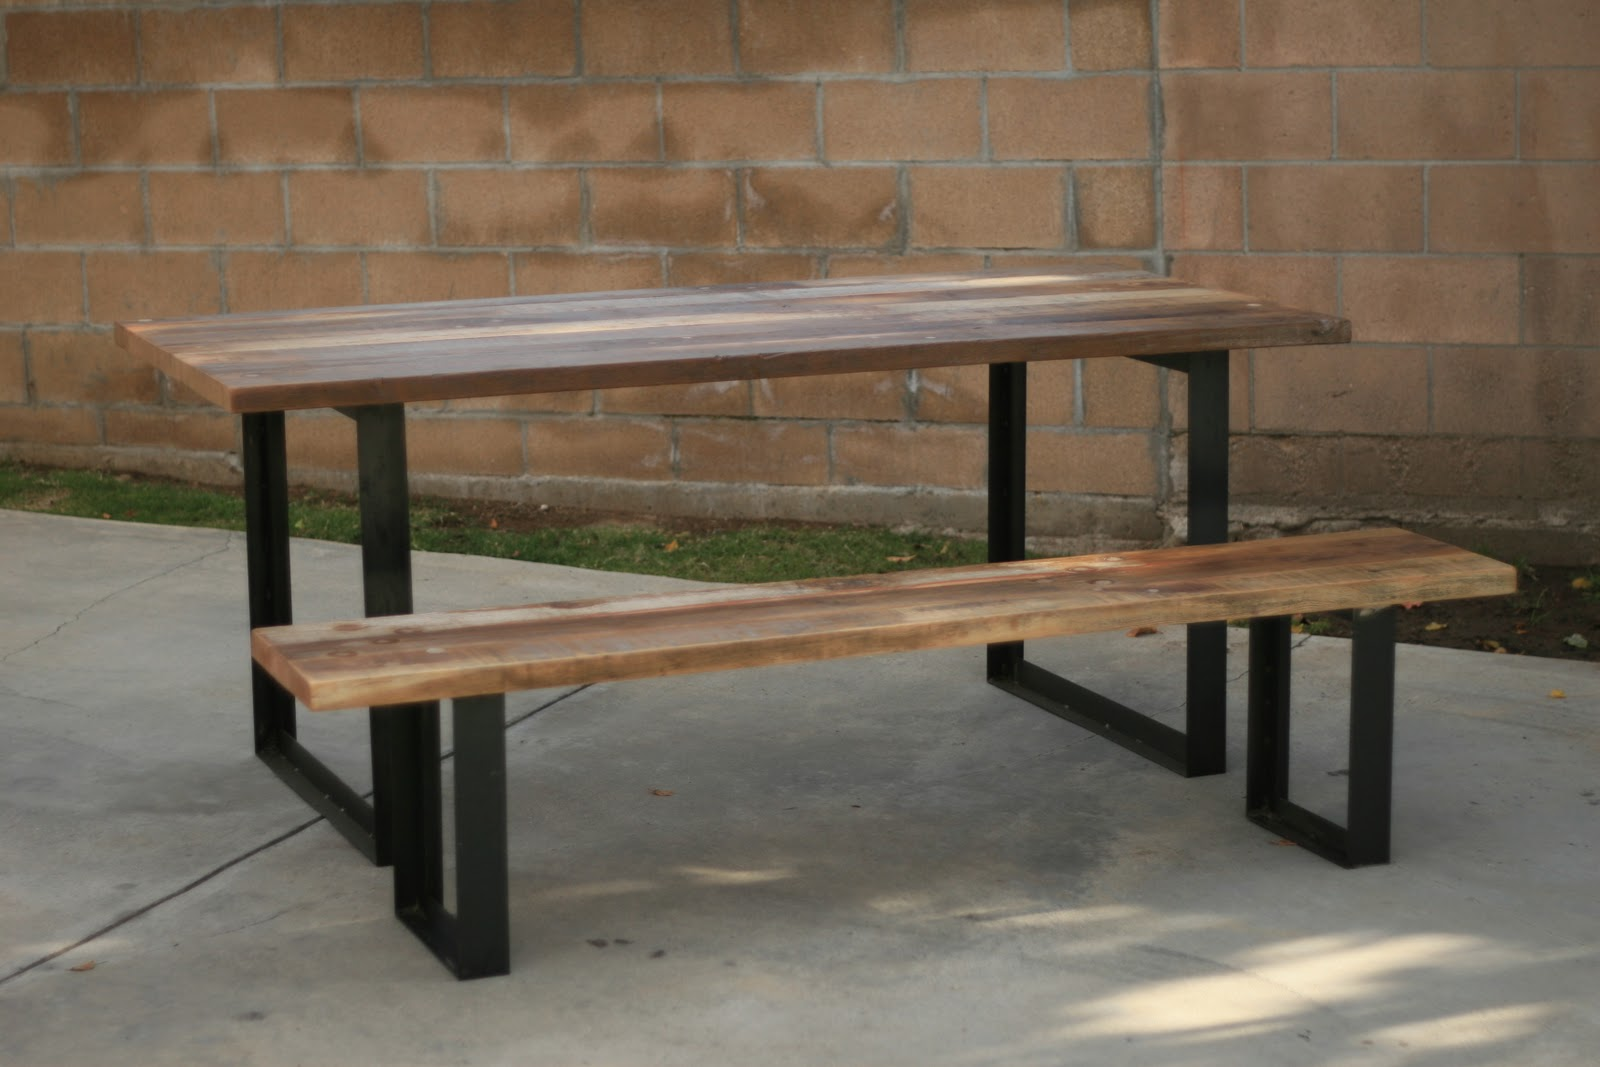 outdoor metal table. Wonderful Table Arbor Exchange  Reclaimed Wood Furniture Outdoor Table  Bench With Metal  Legs Inside